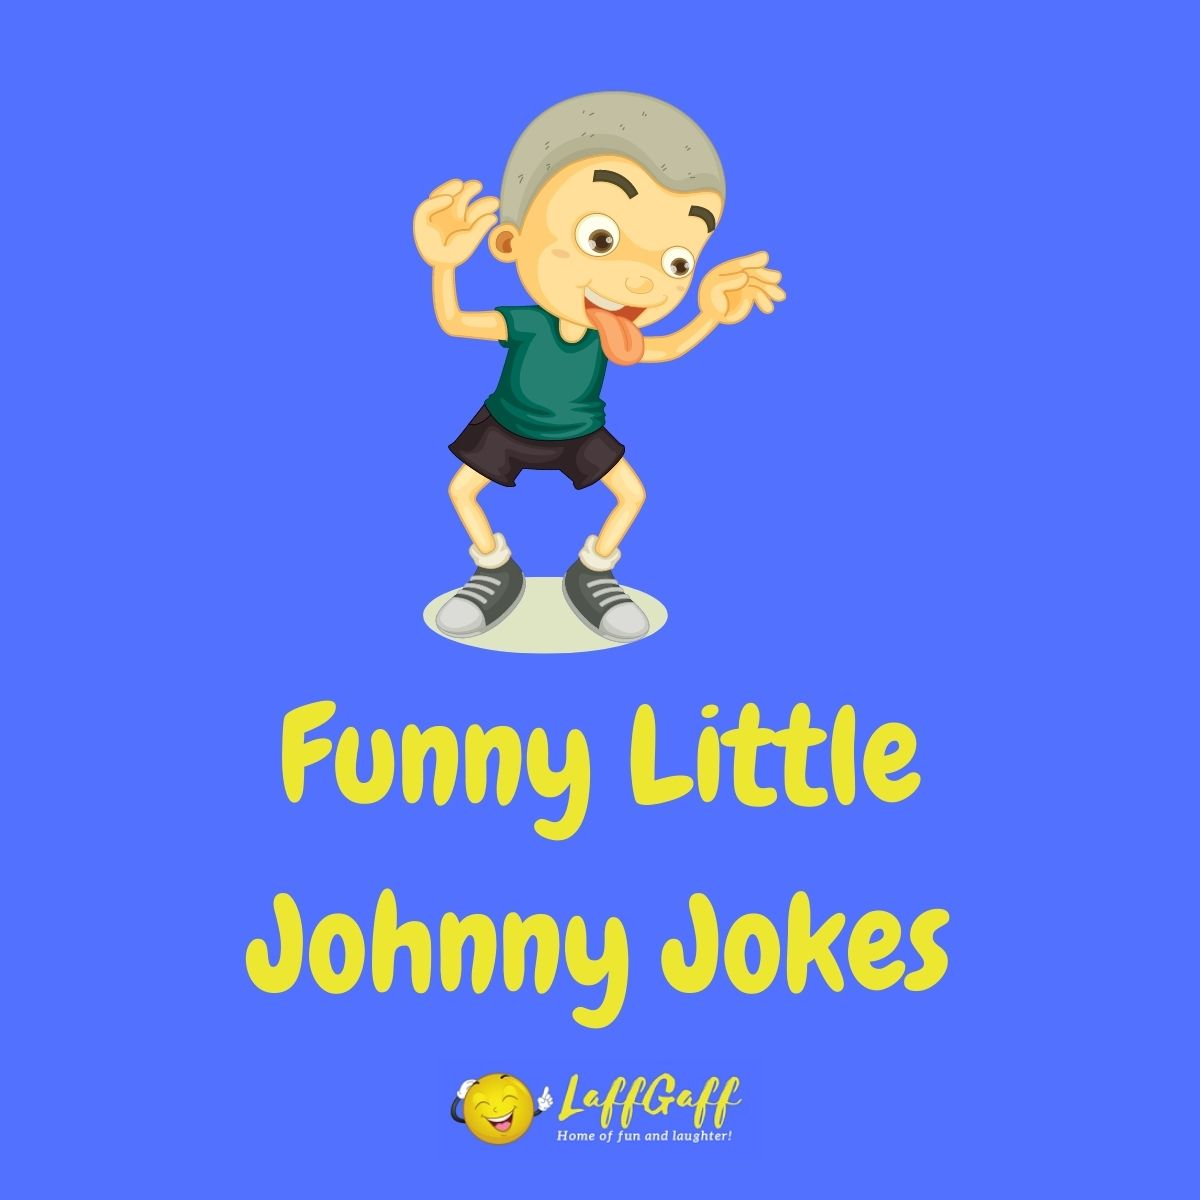 Featured image for a page of funny Little Johnny jokes.